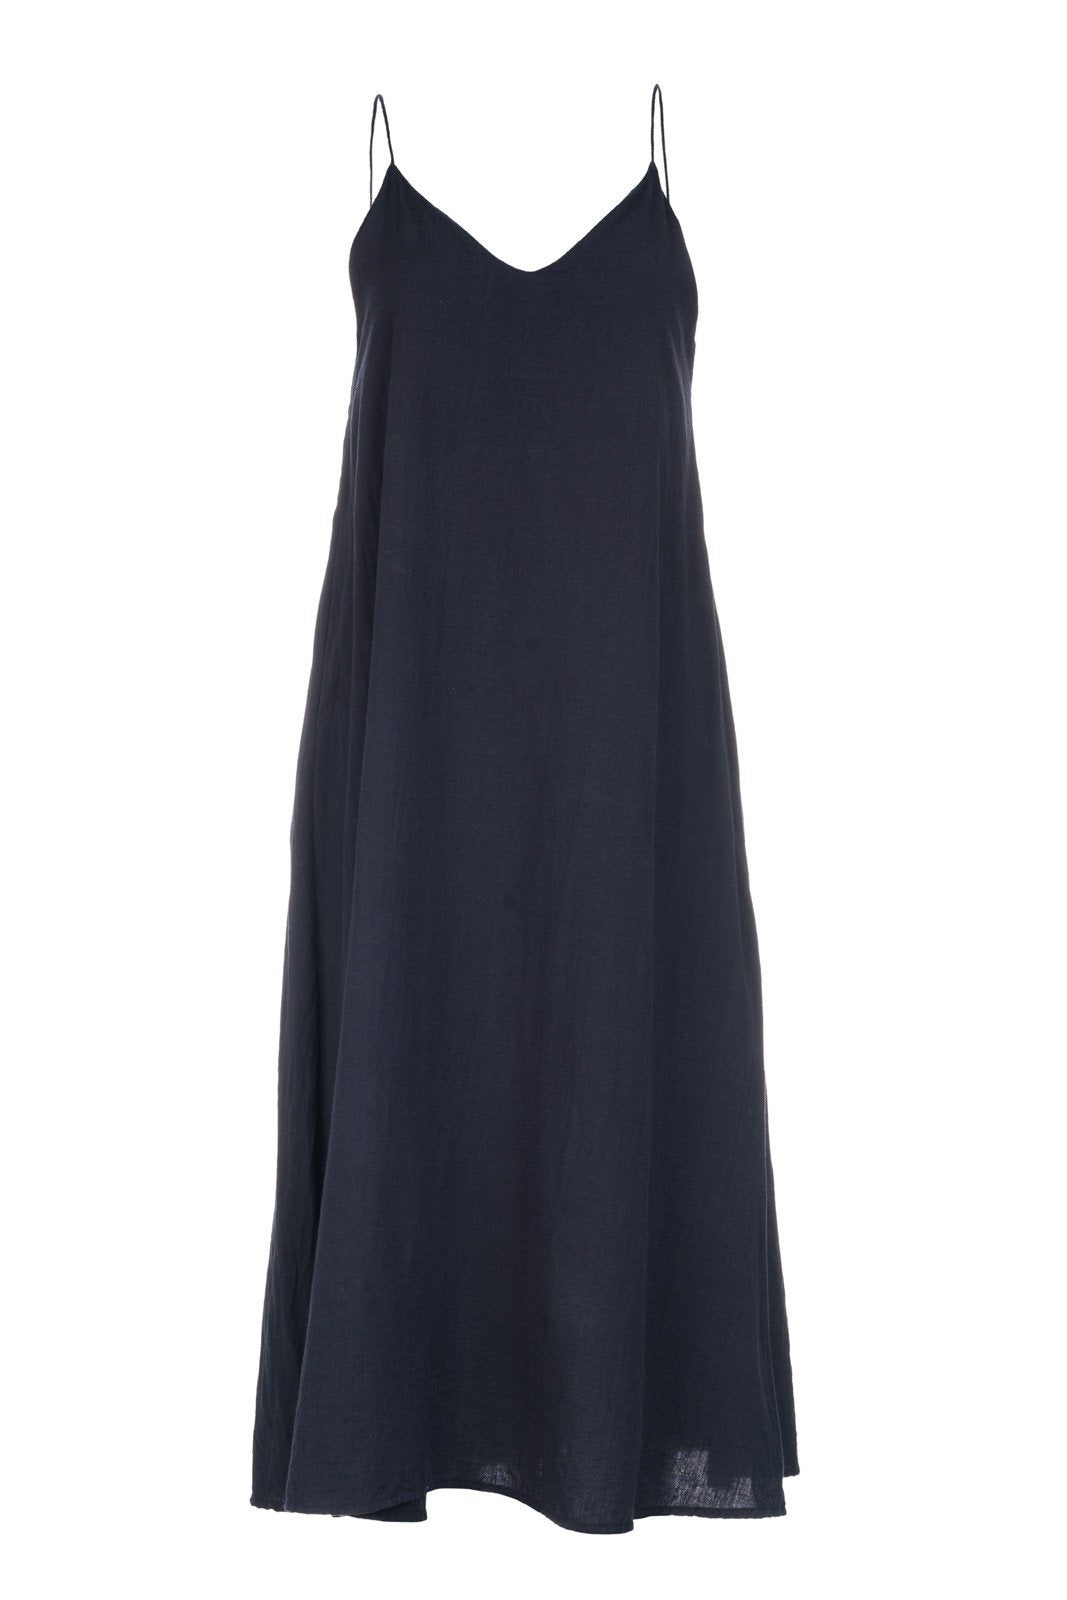 SLIP DRESS - BLACK